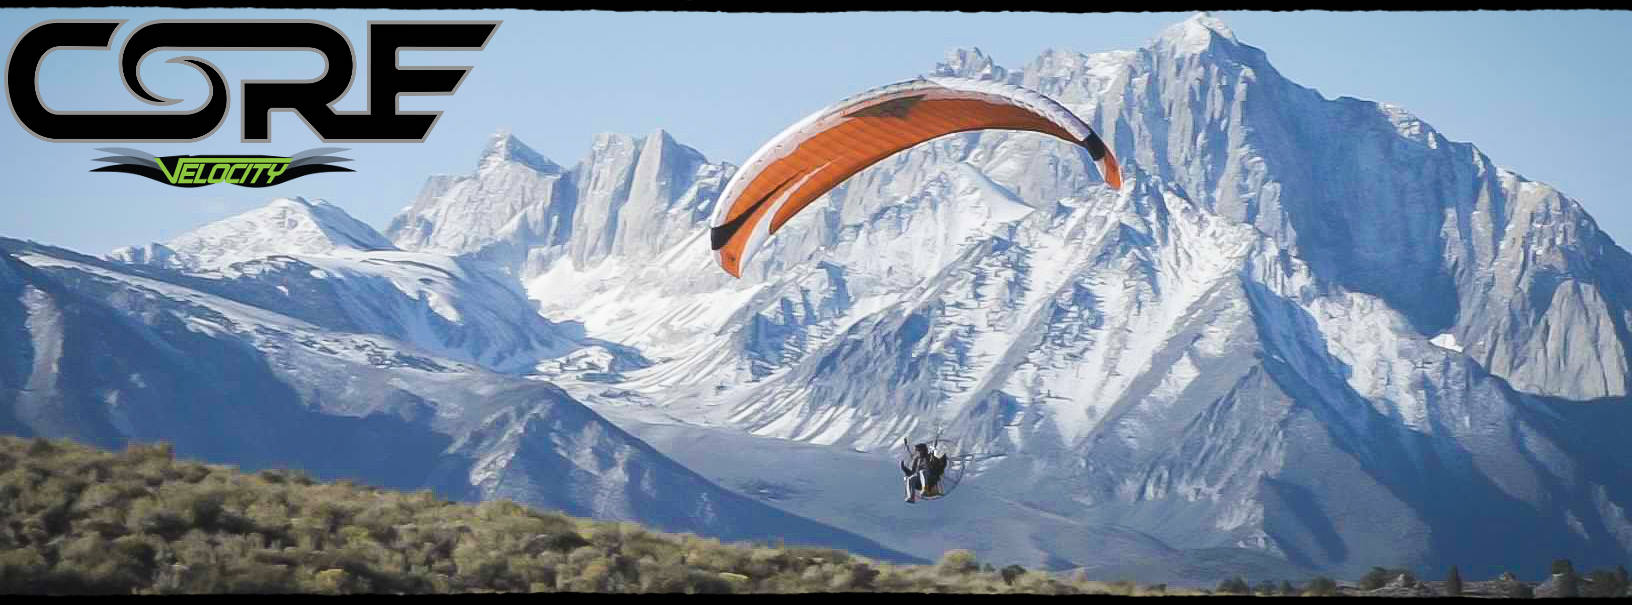 Velocity Core Paraglider For Powered Paragliding - From BlackHawk Paramotors USA